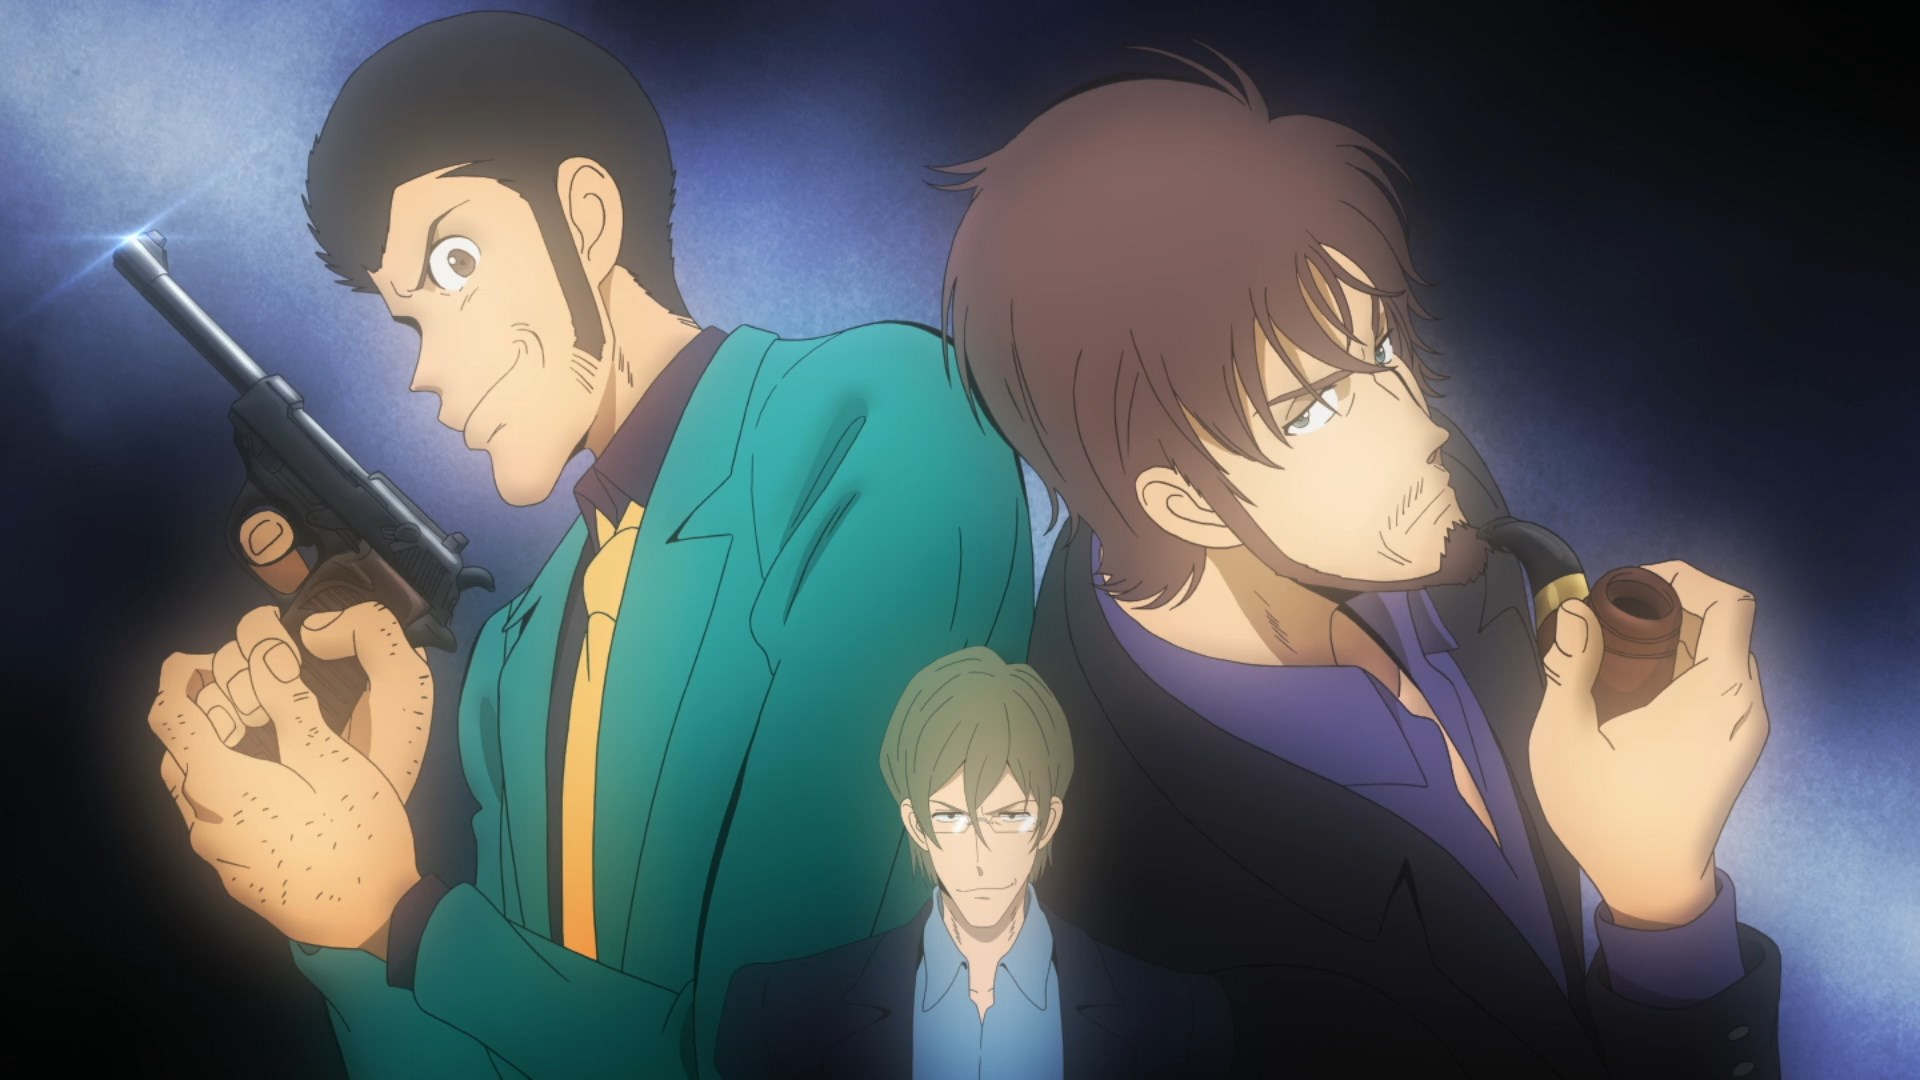 Featured image for Lupin the Third Part 6 – 02 (Lupin III vs Sherlock Holmes)